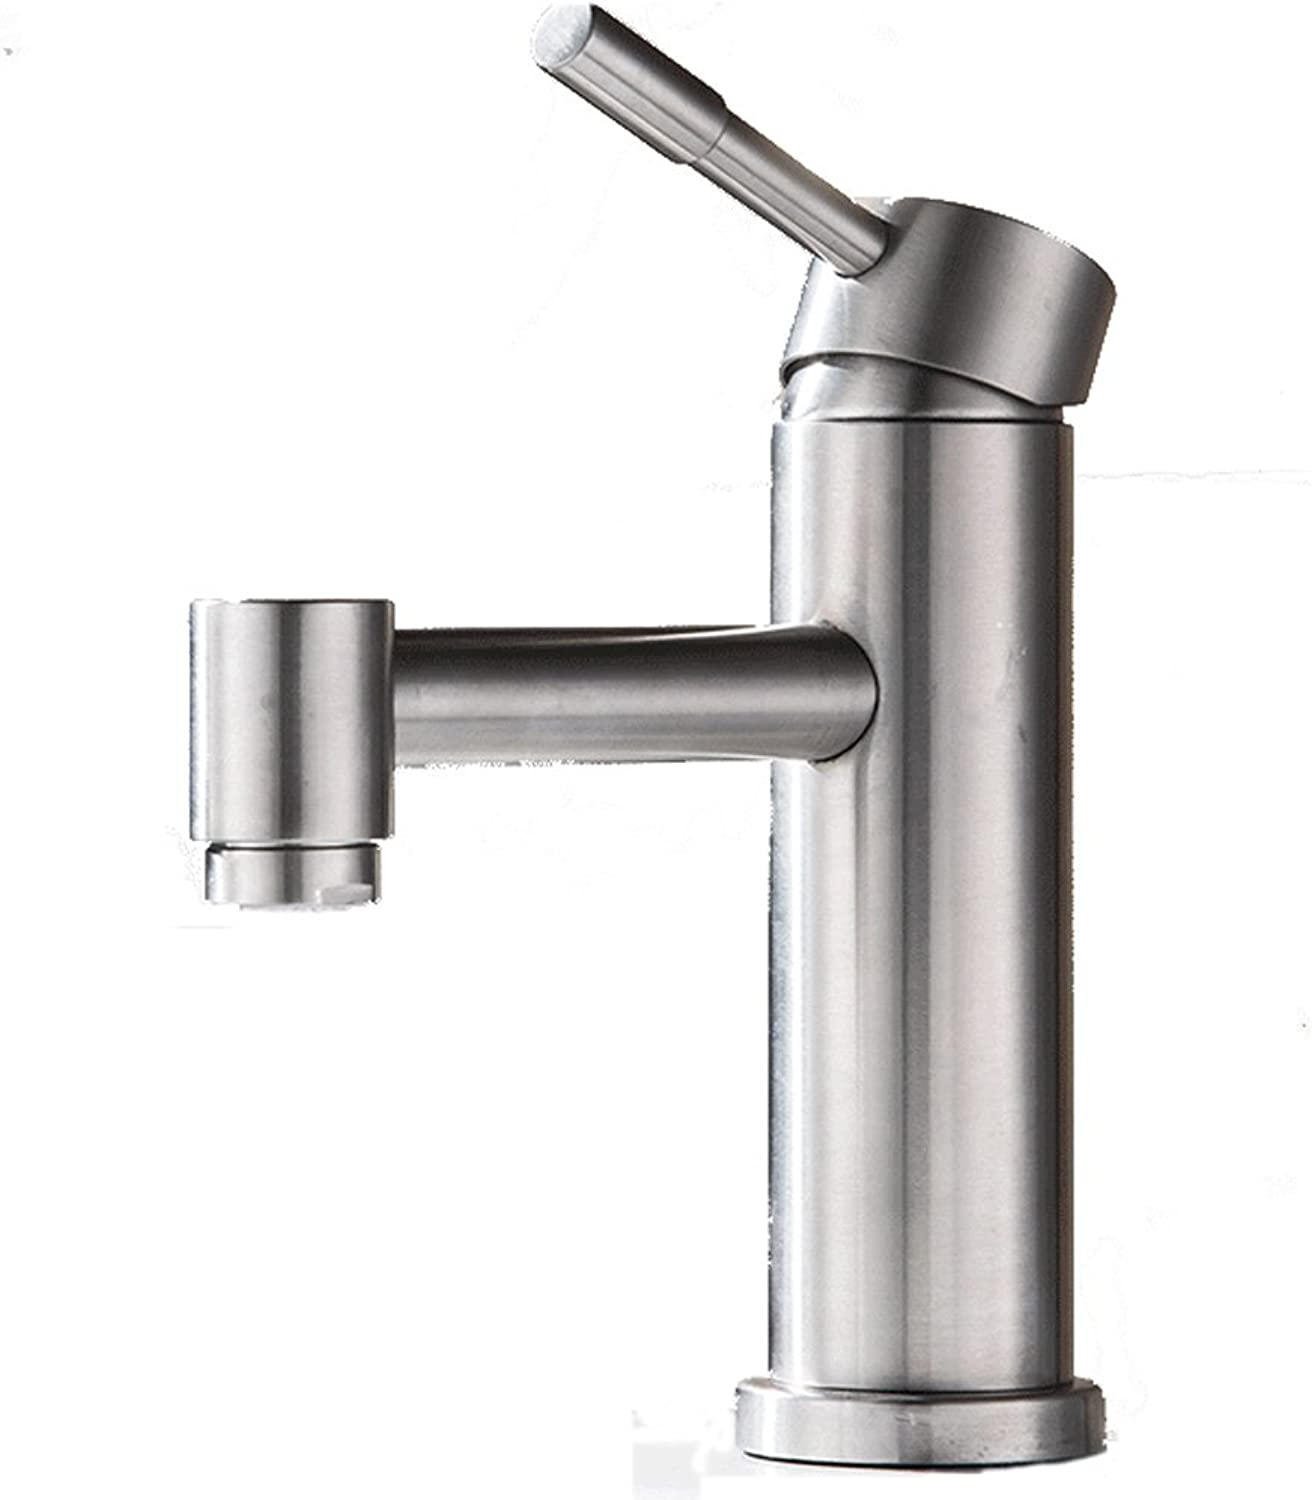 304 Stainless Steel Faucet Single Hole Hot And Cold Bathroom Wash Basin Mixing Valve European Aperture Is 32MM To 40MM Can Be Installed Liuyu.